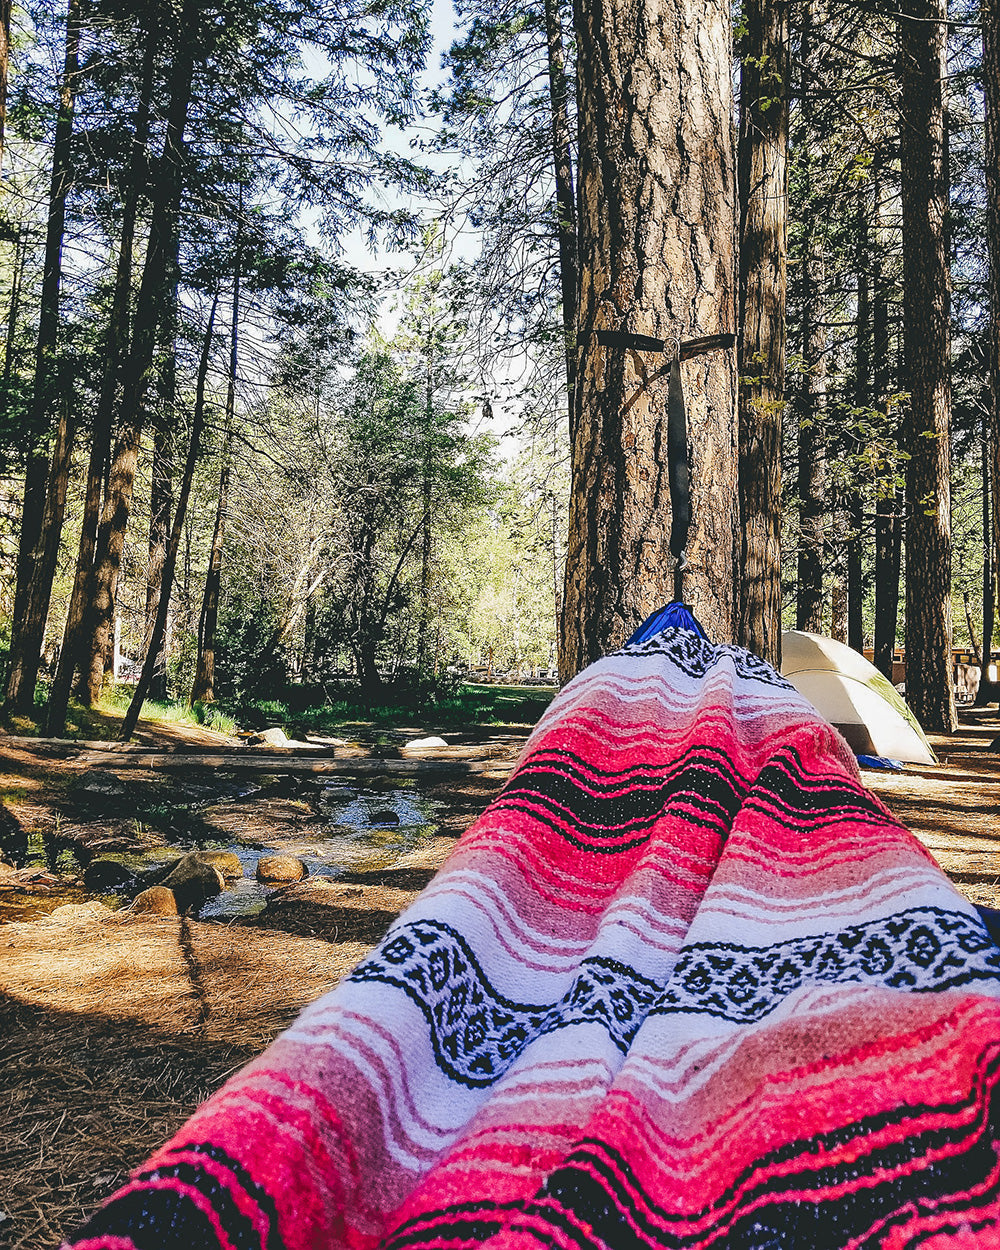 Relaxing in the hammock with a Bohemian Fiesta Blanket is our favorite way to spend time while camping when we aren't out exploring the trails. Lucky we had such a good spot to relax in Yosemite on our last trip.